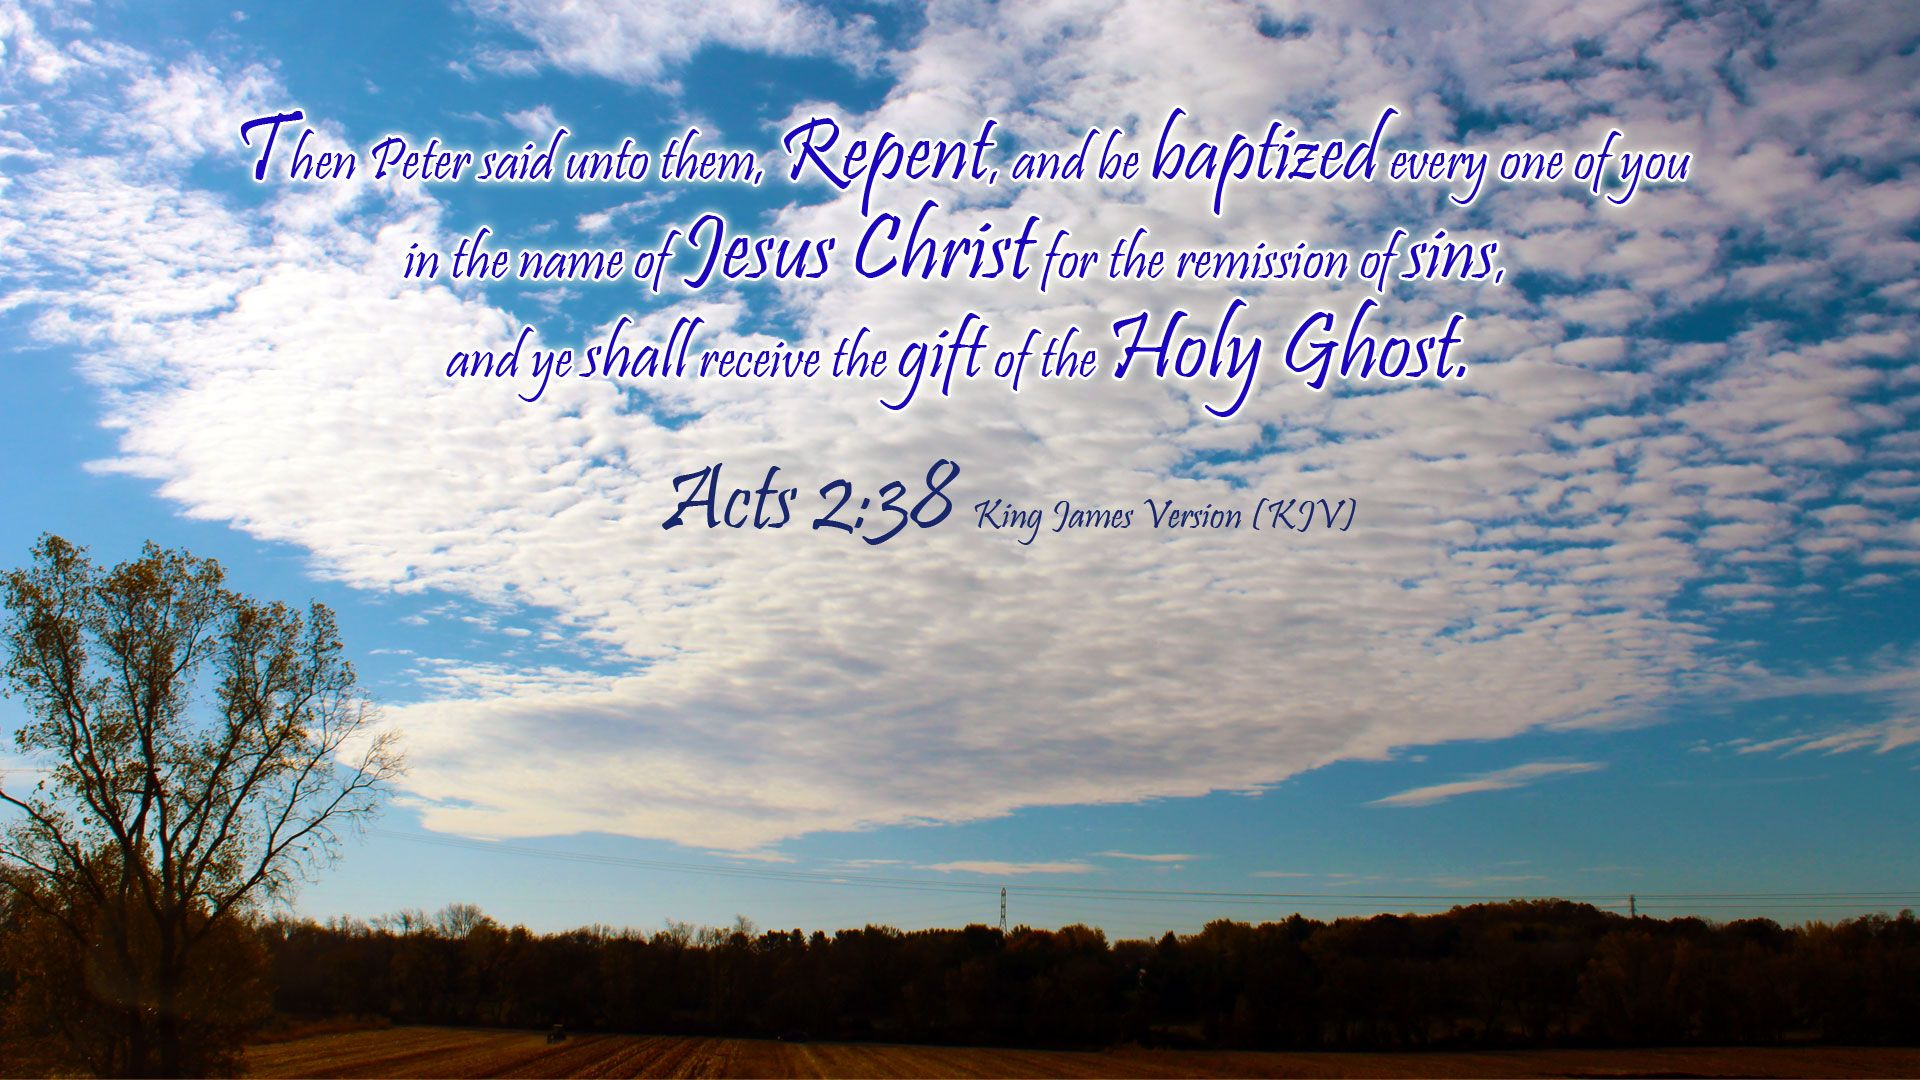 Acts 238 kjv and more blessings names of jesus